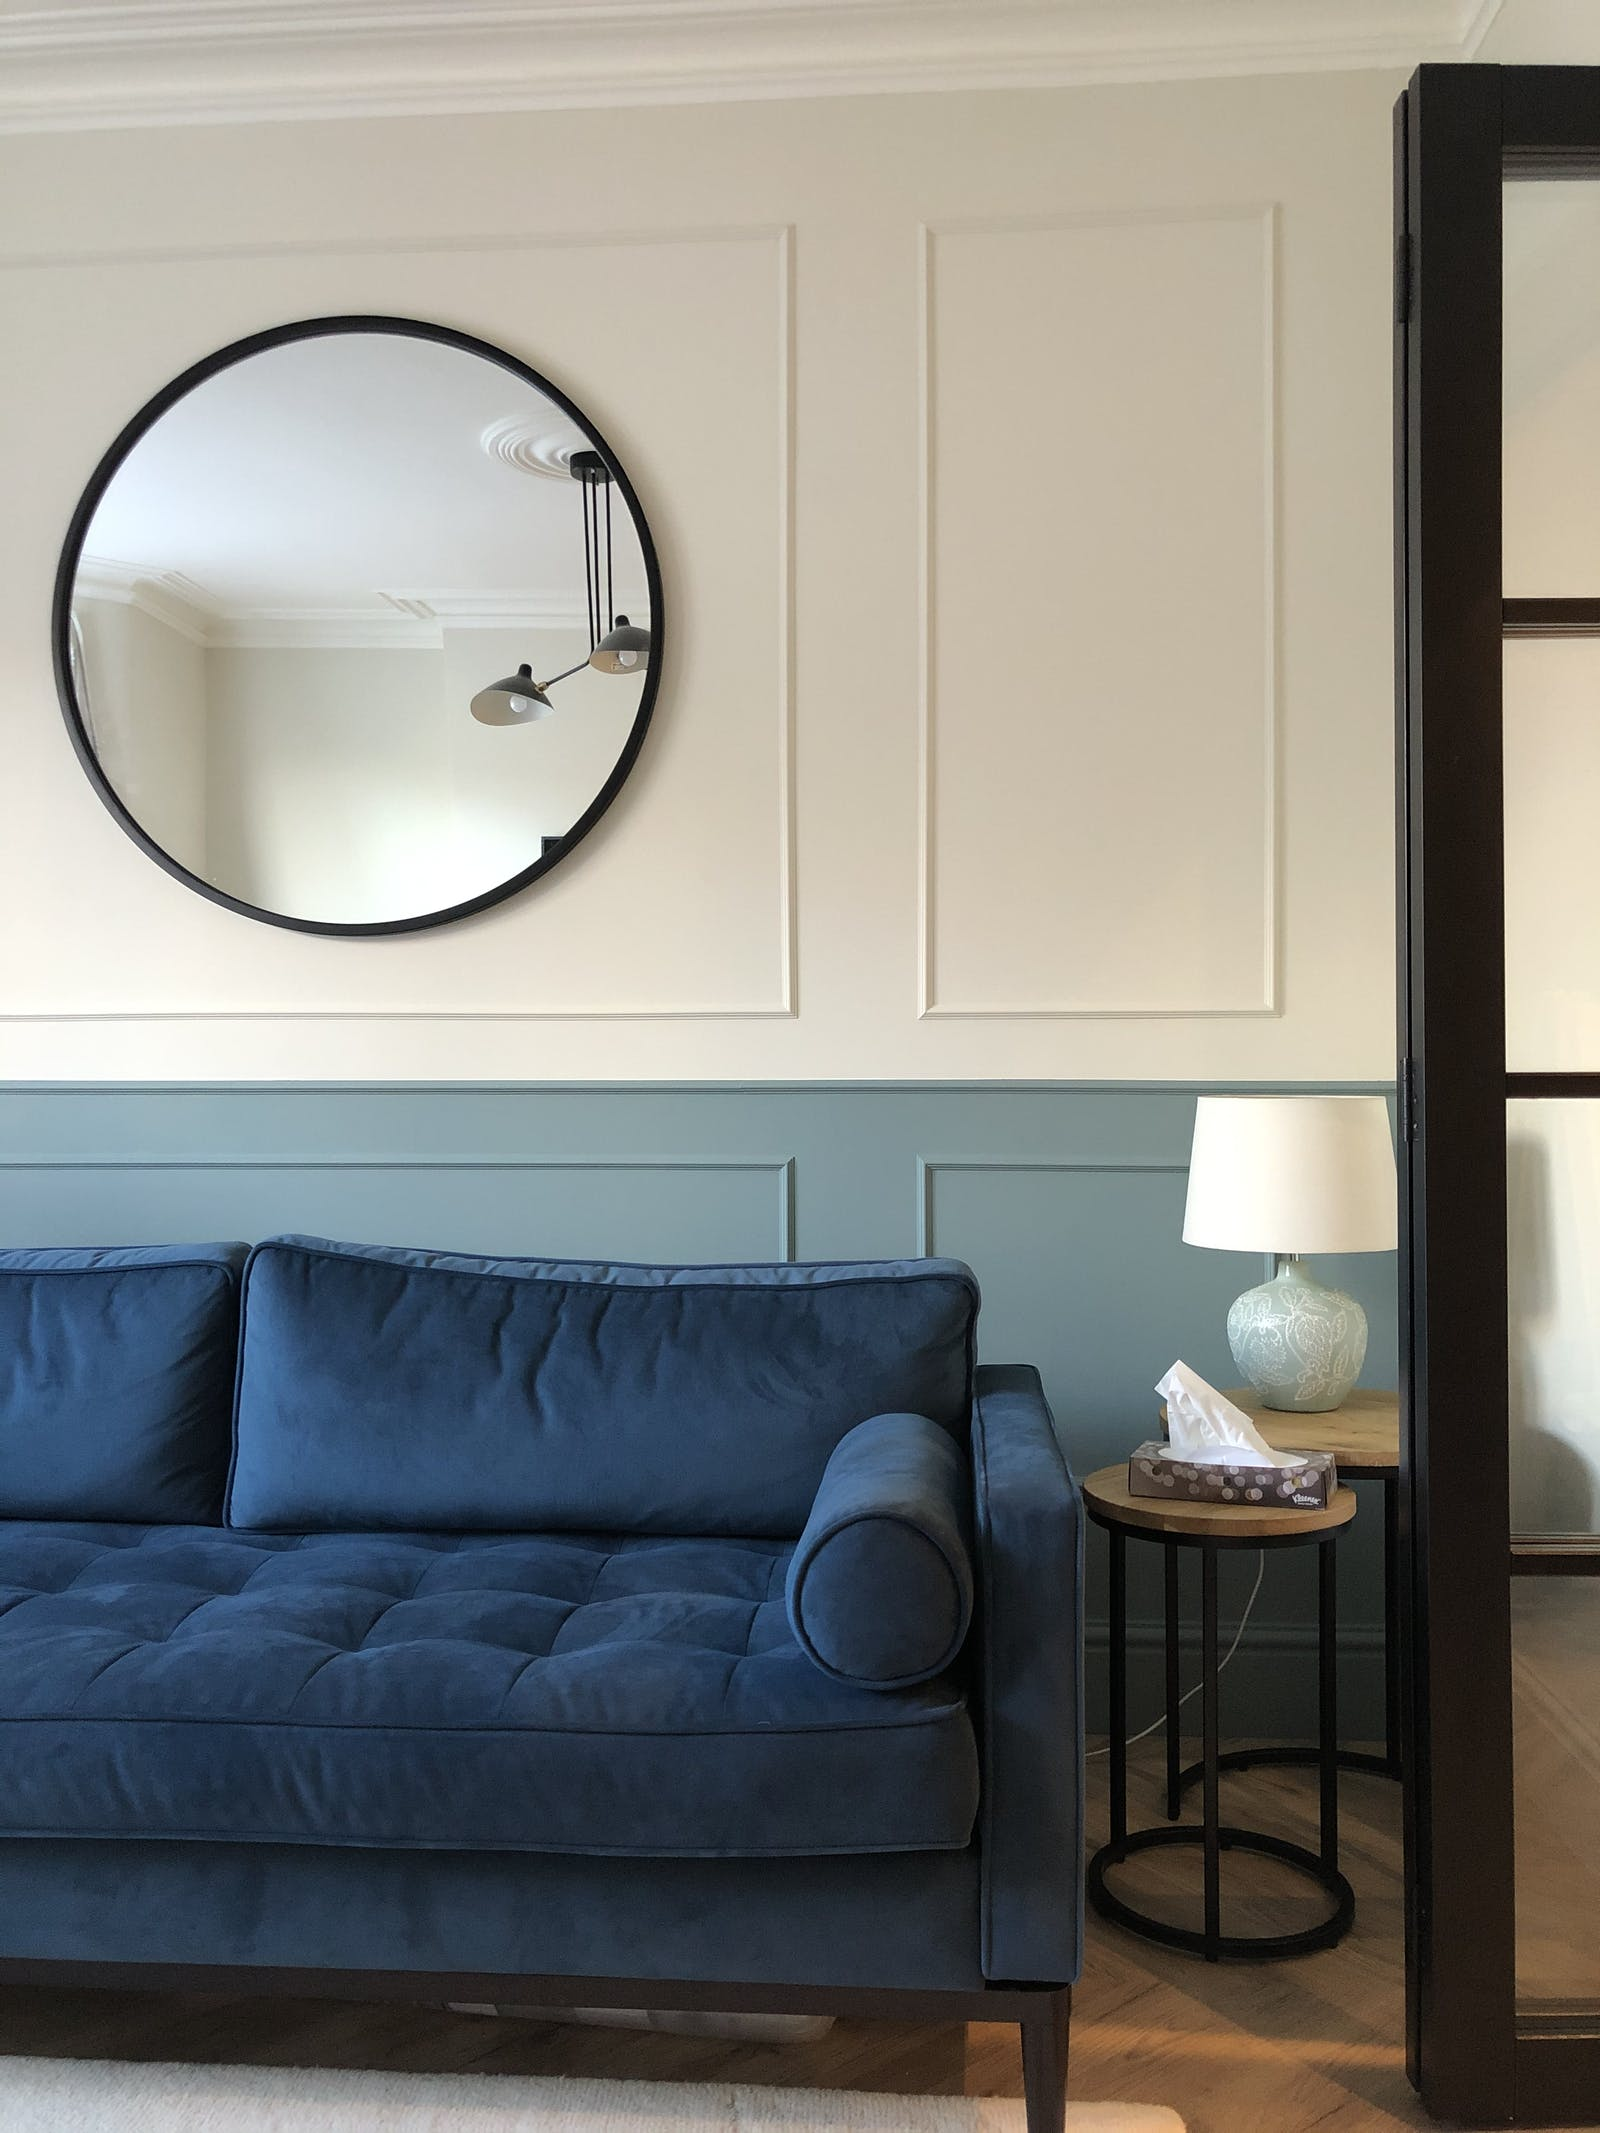 Chic living room with Teal 01 painted wall panels and dark blue sofa